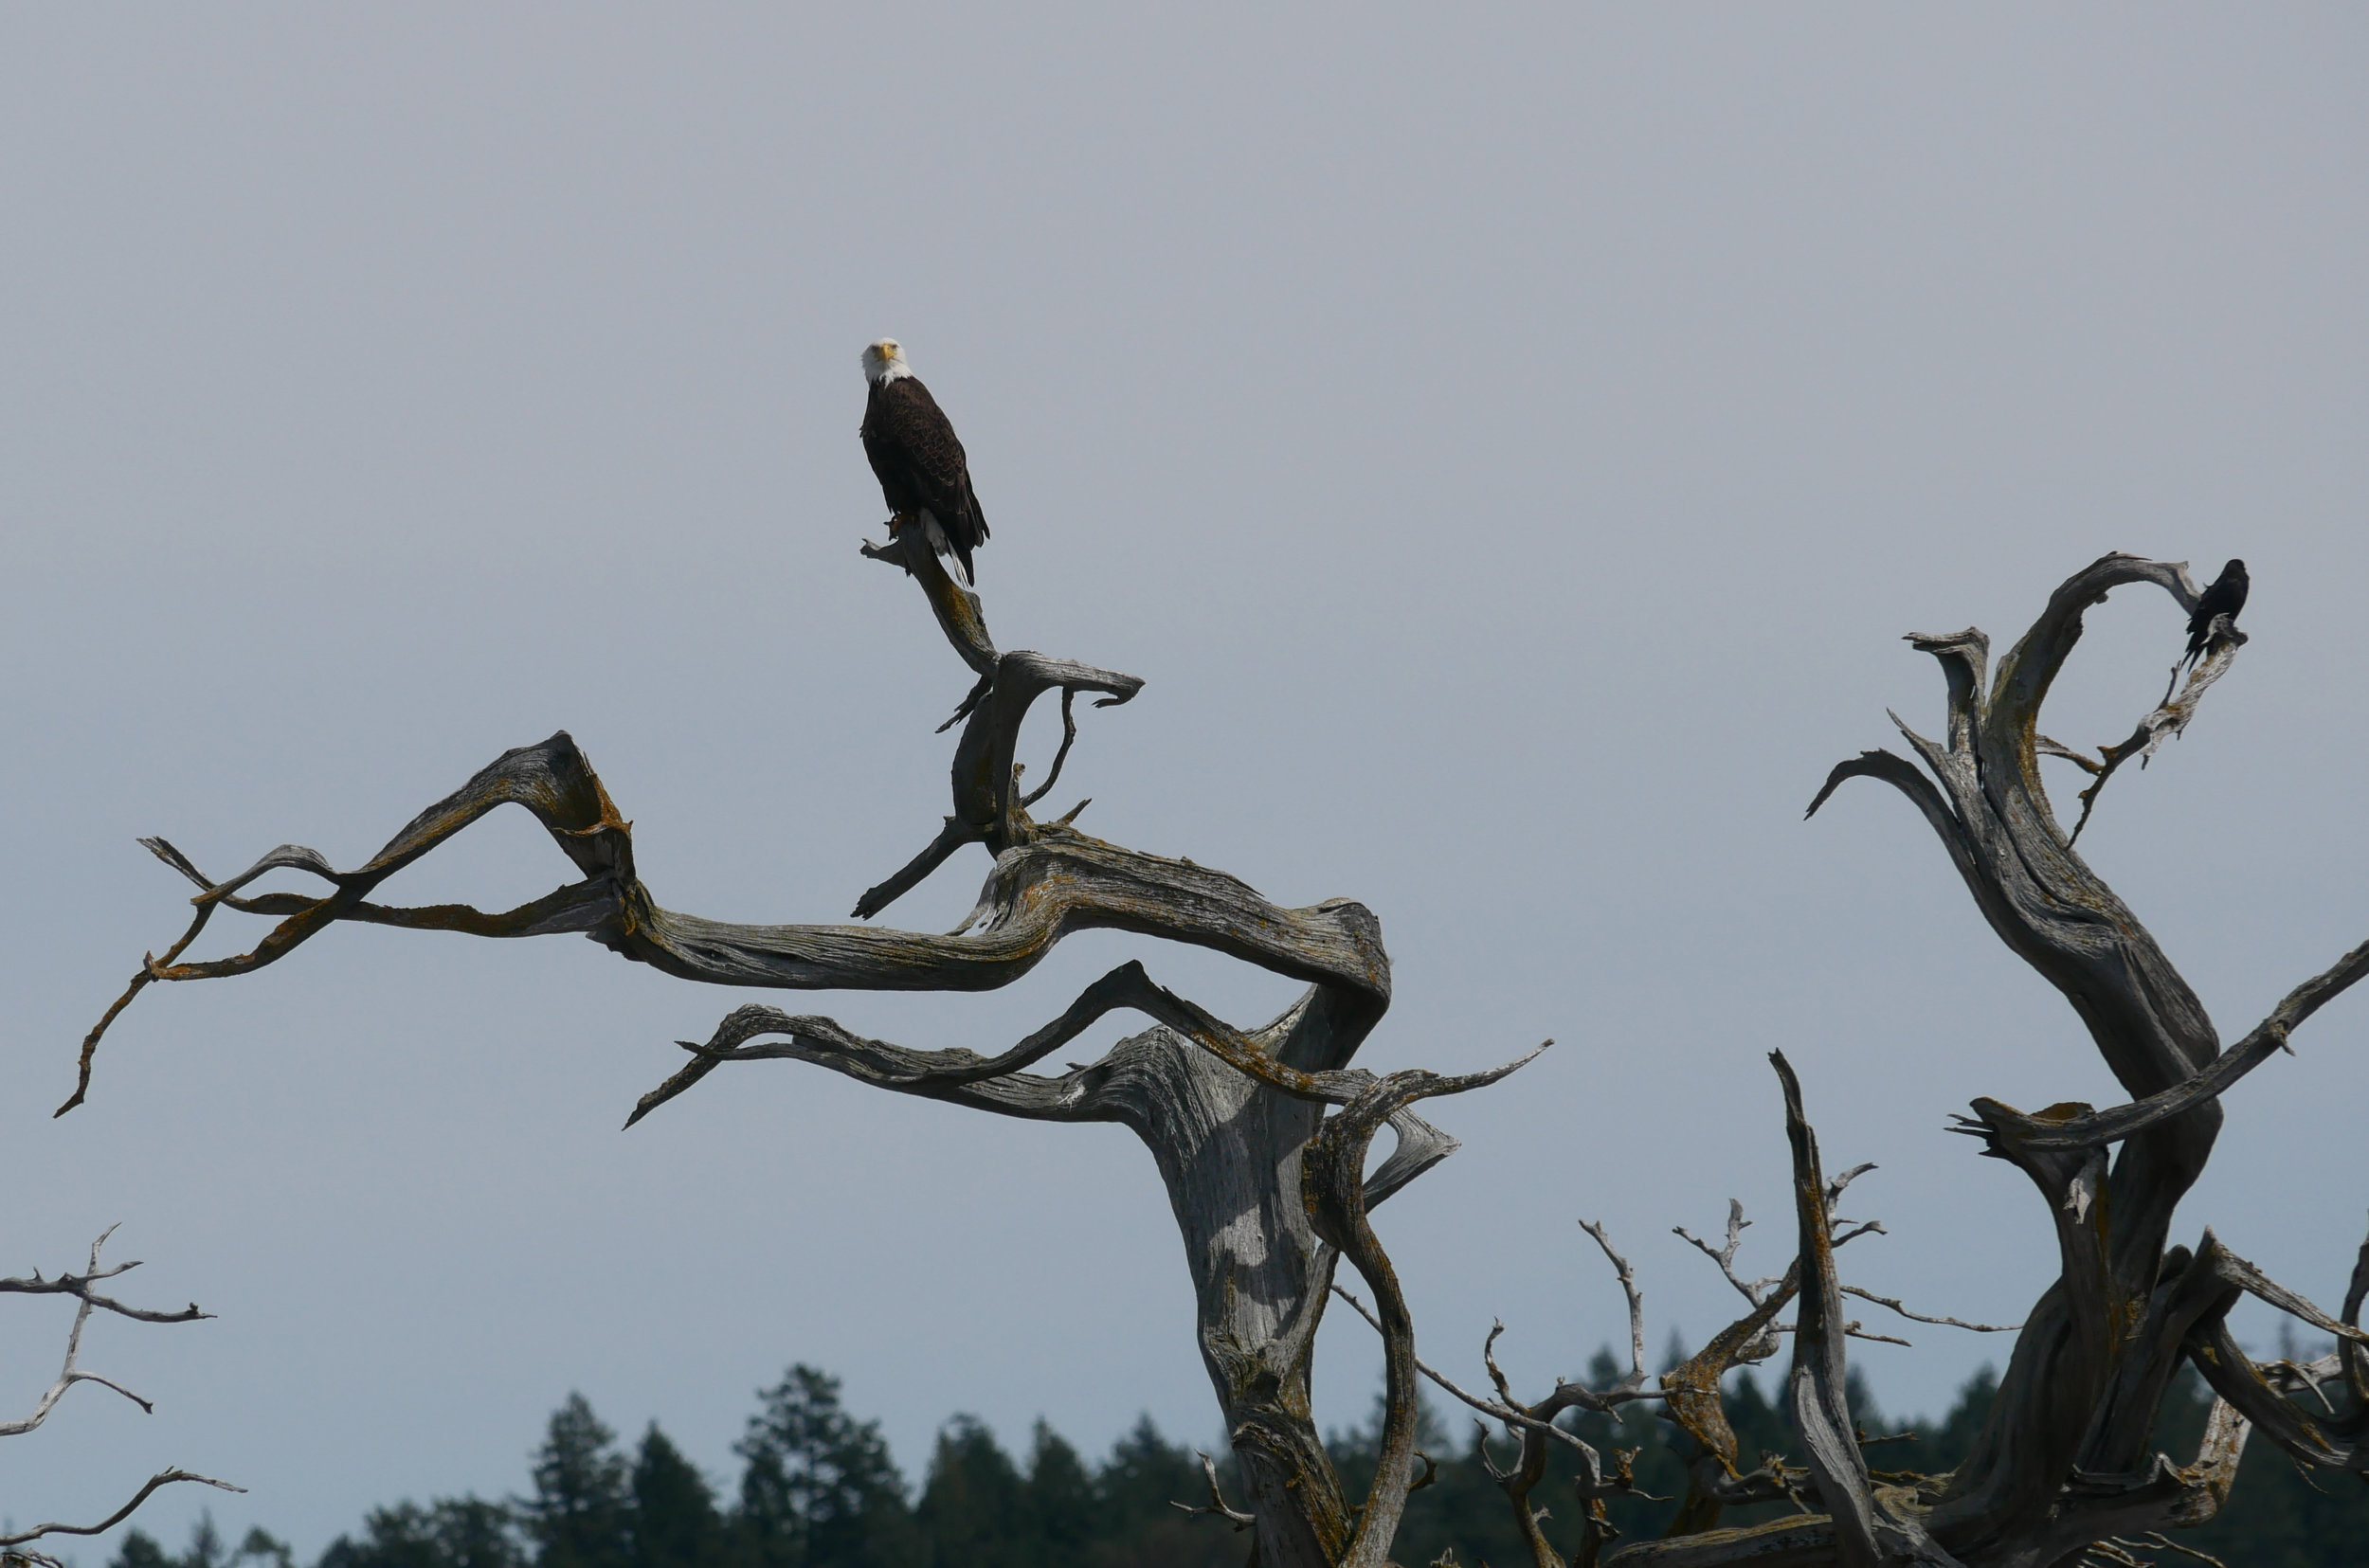 An adult Bald Eagle perched on top of a tree watching our guests. Photo by Alanna Vivani.